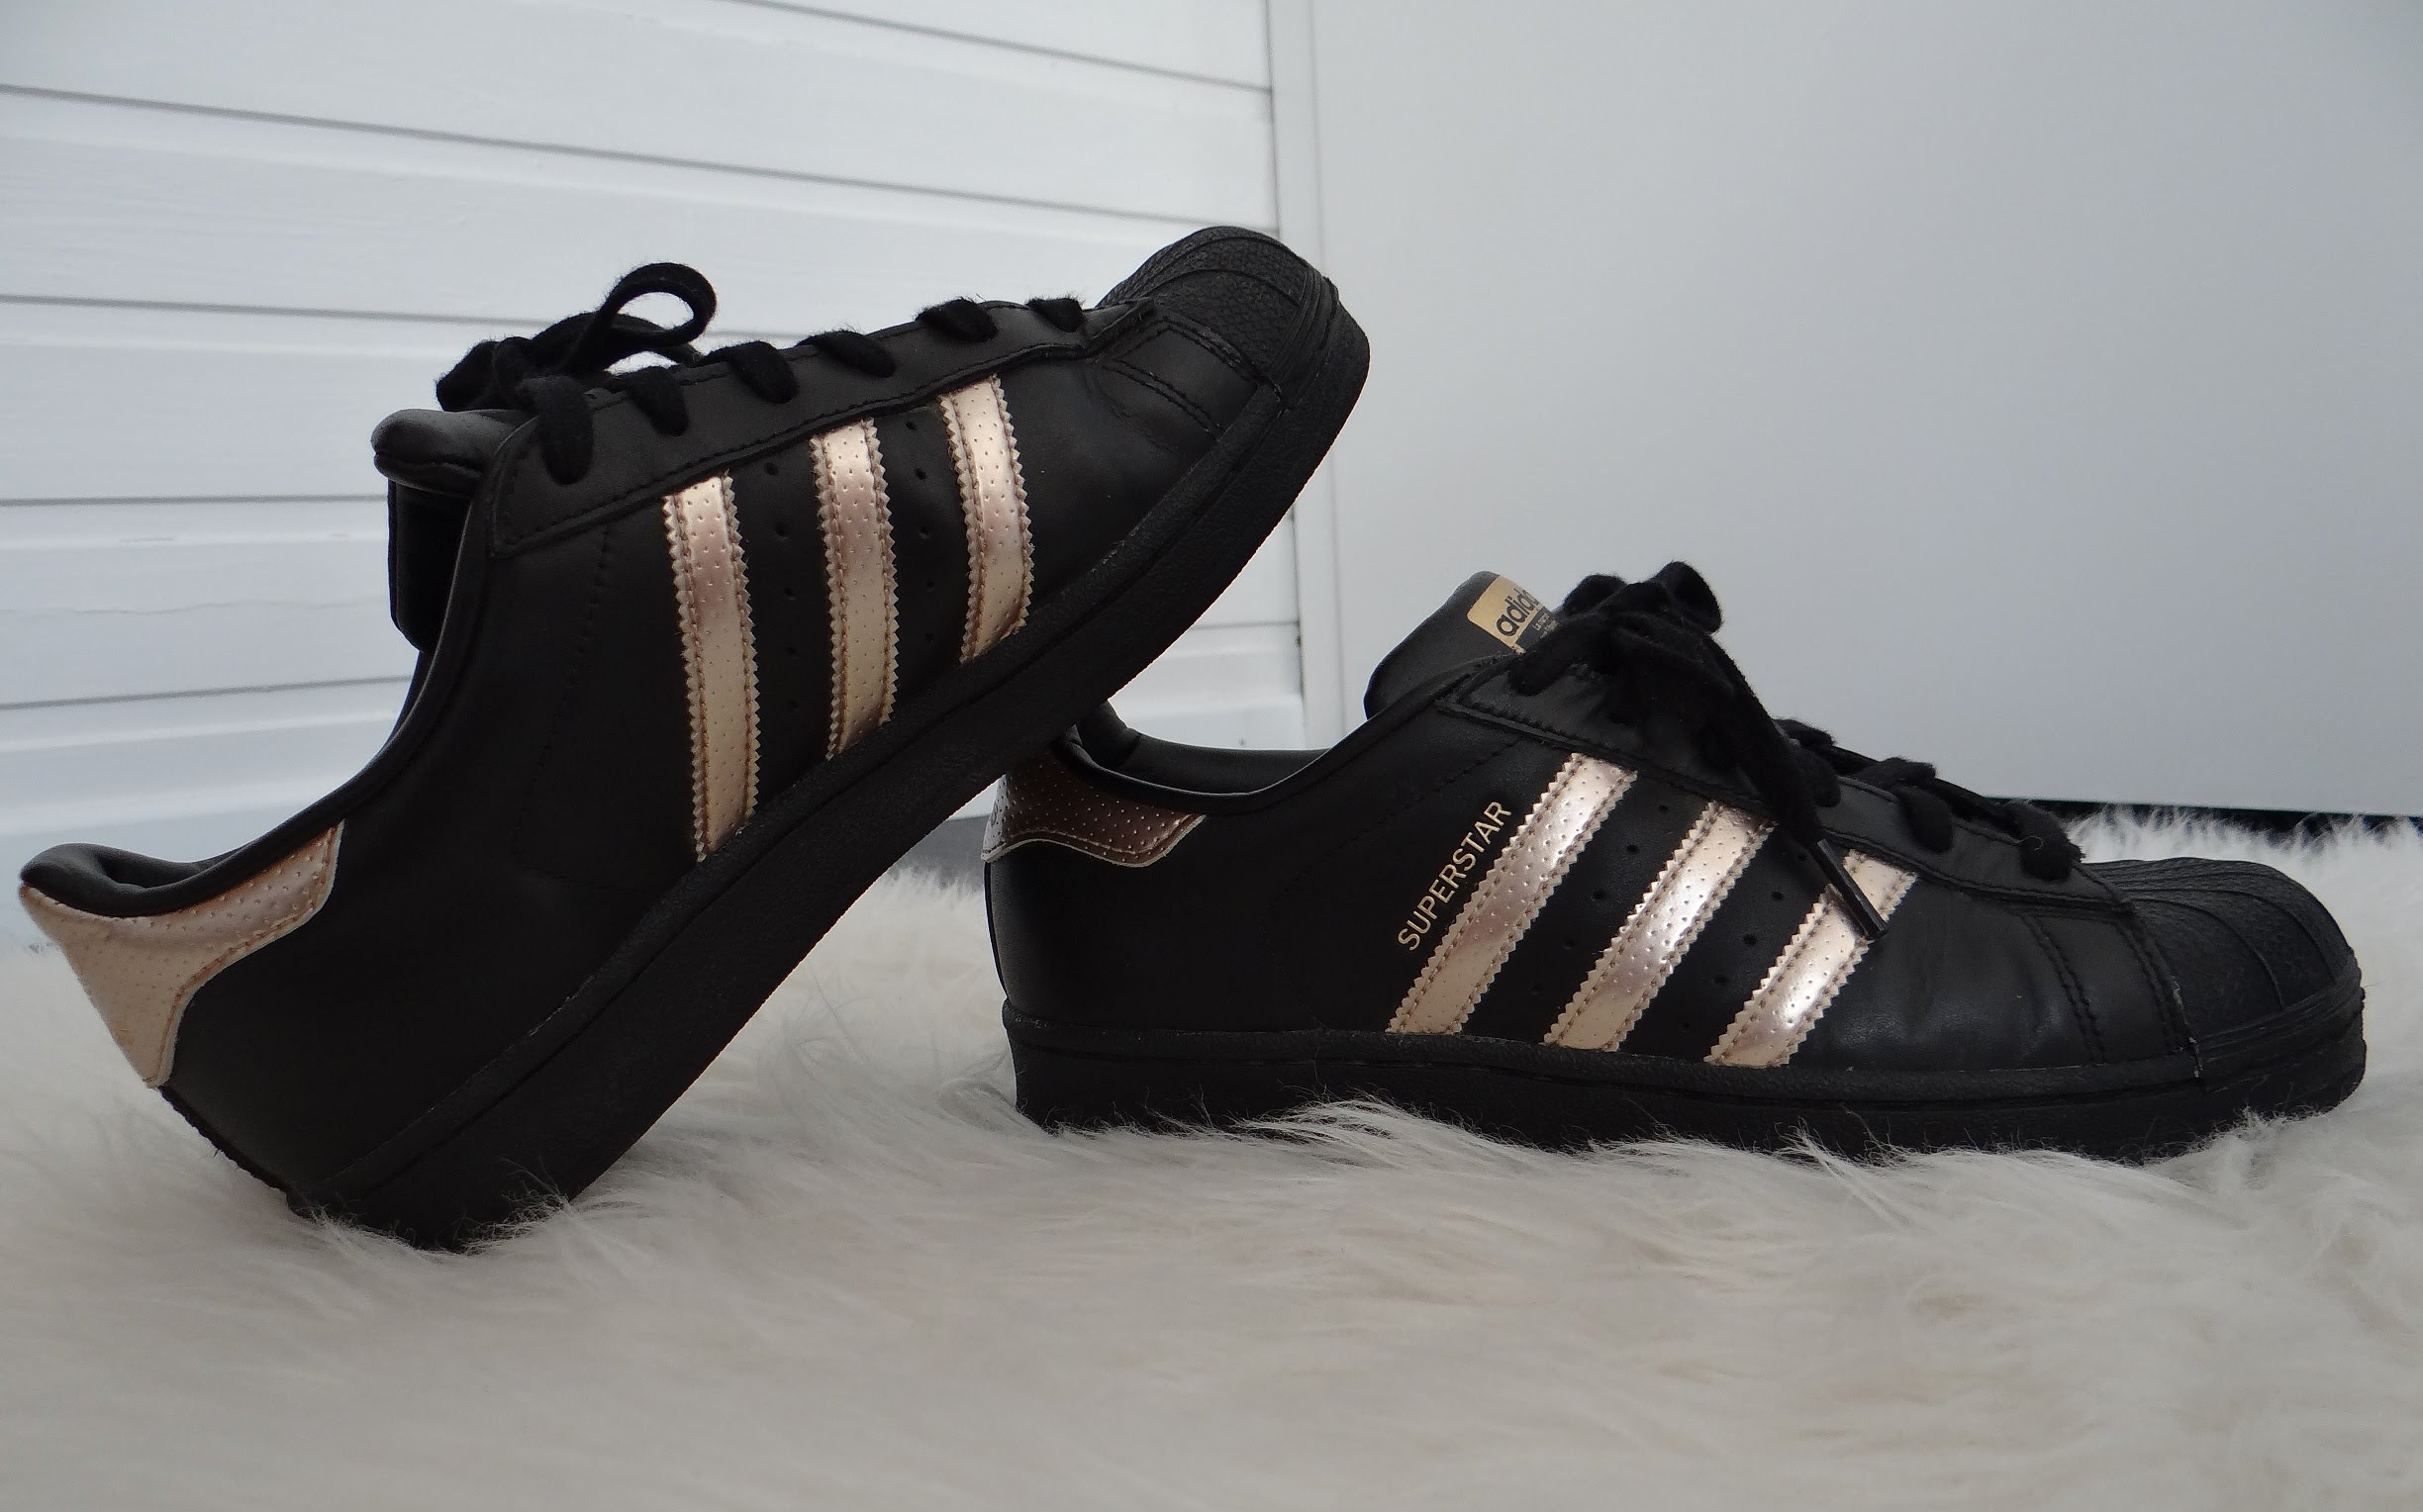 Adidas Superstar Black And Gold Buy 100 Authentic Adidas